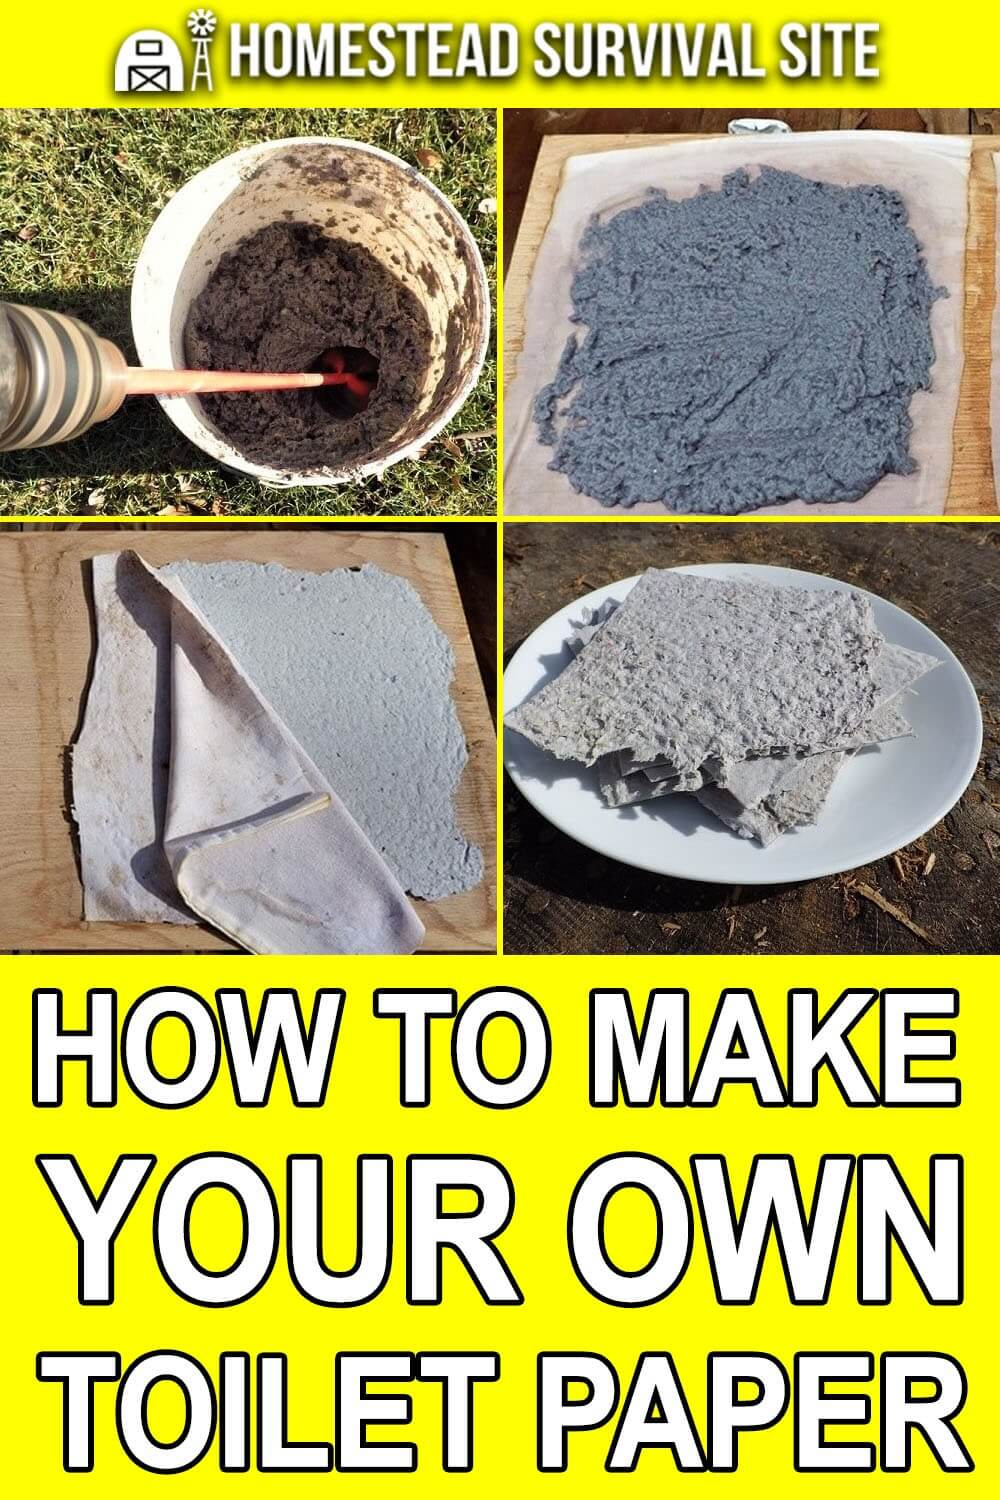 How To Make Your Own Toilet Paper